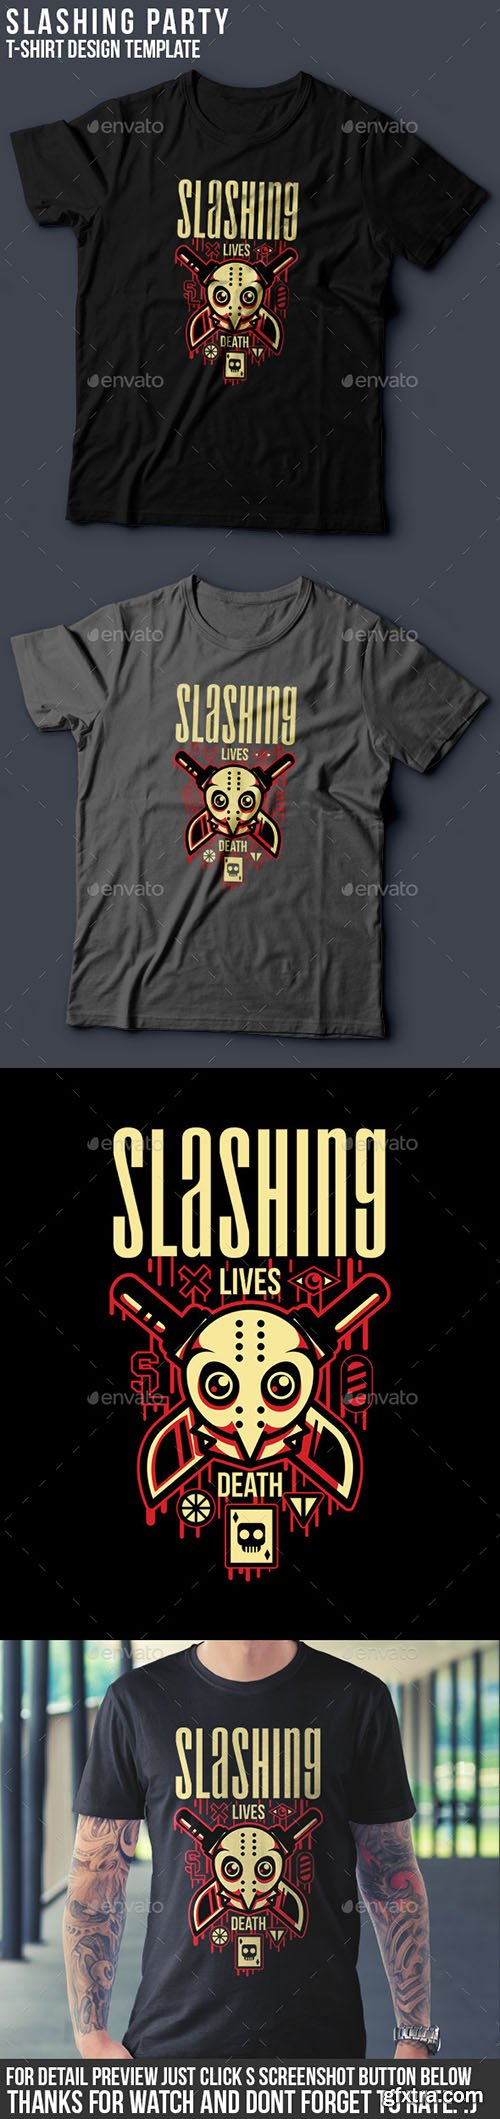 GraphicRiver - Slashing Party T-Shirt Design 15143026